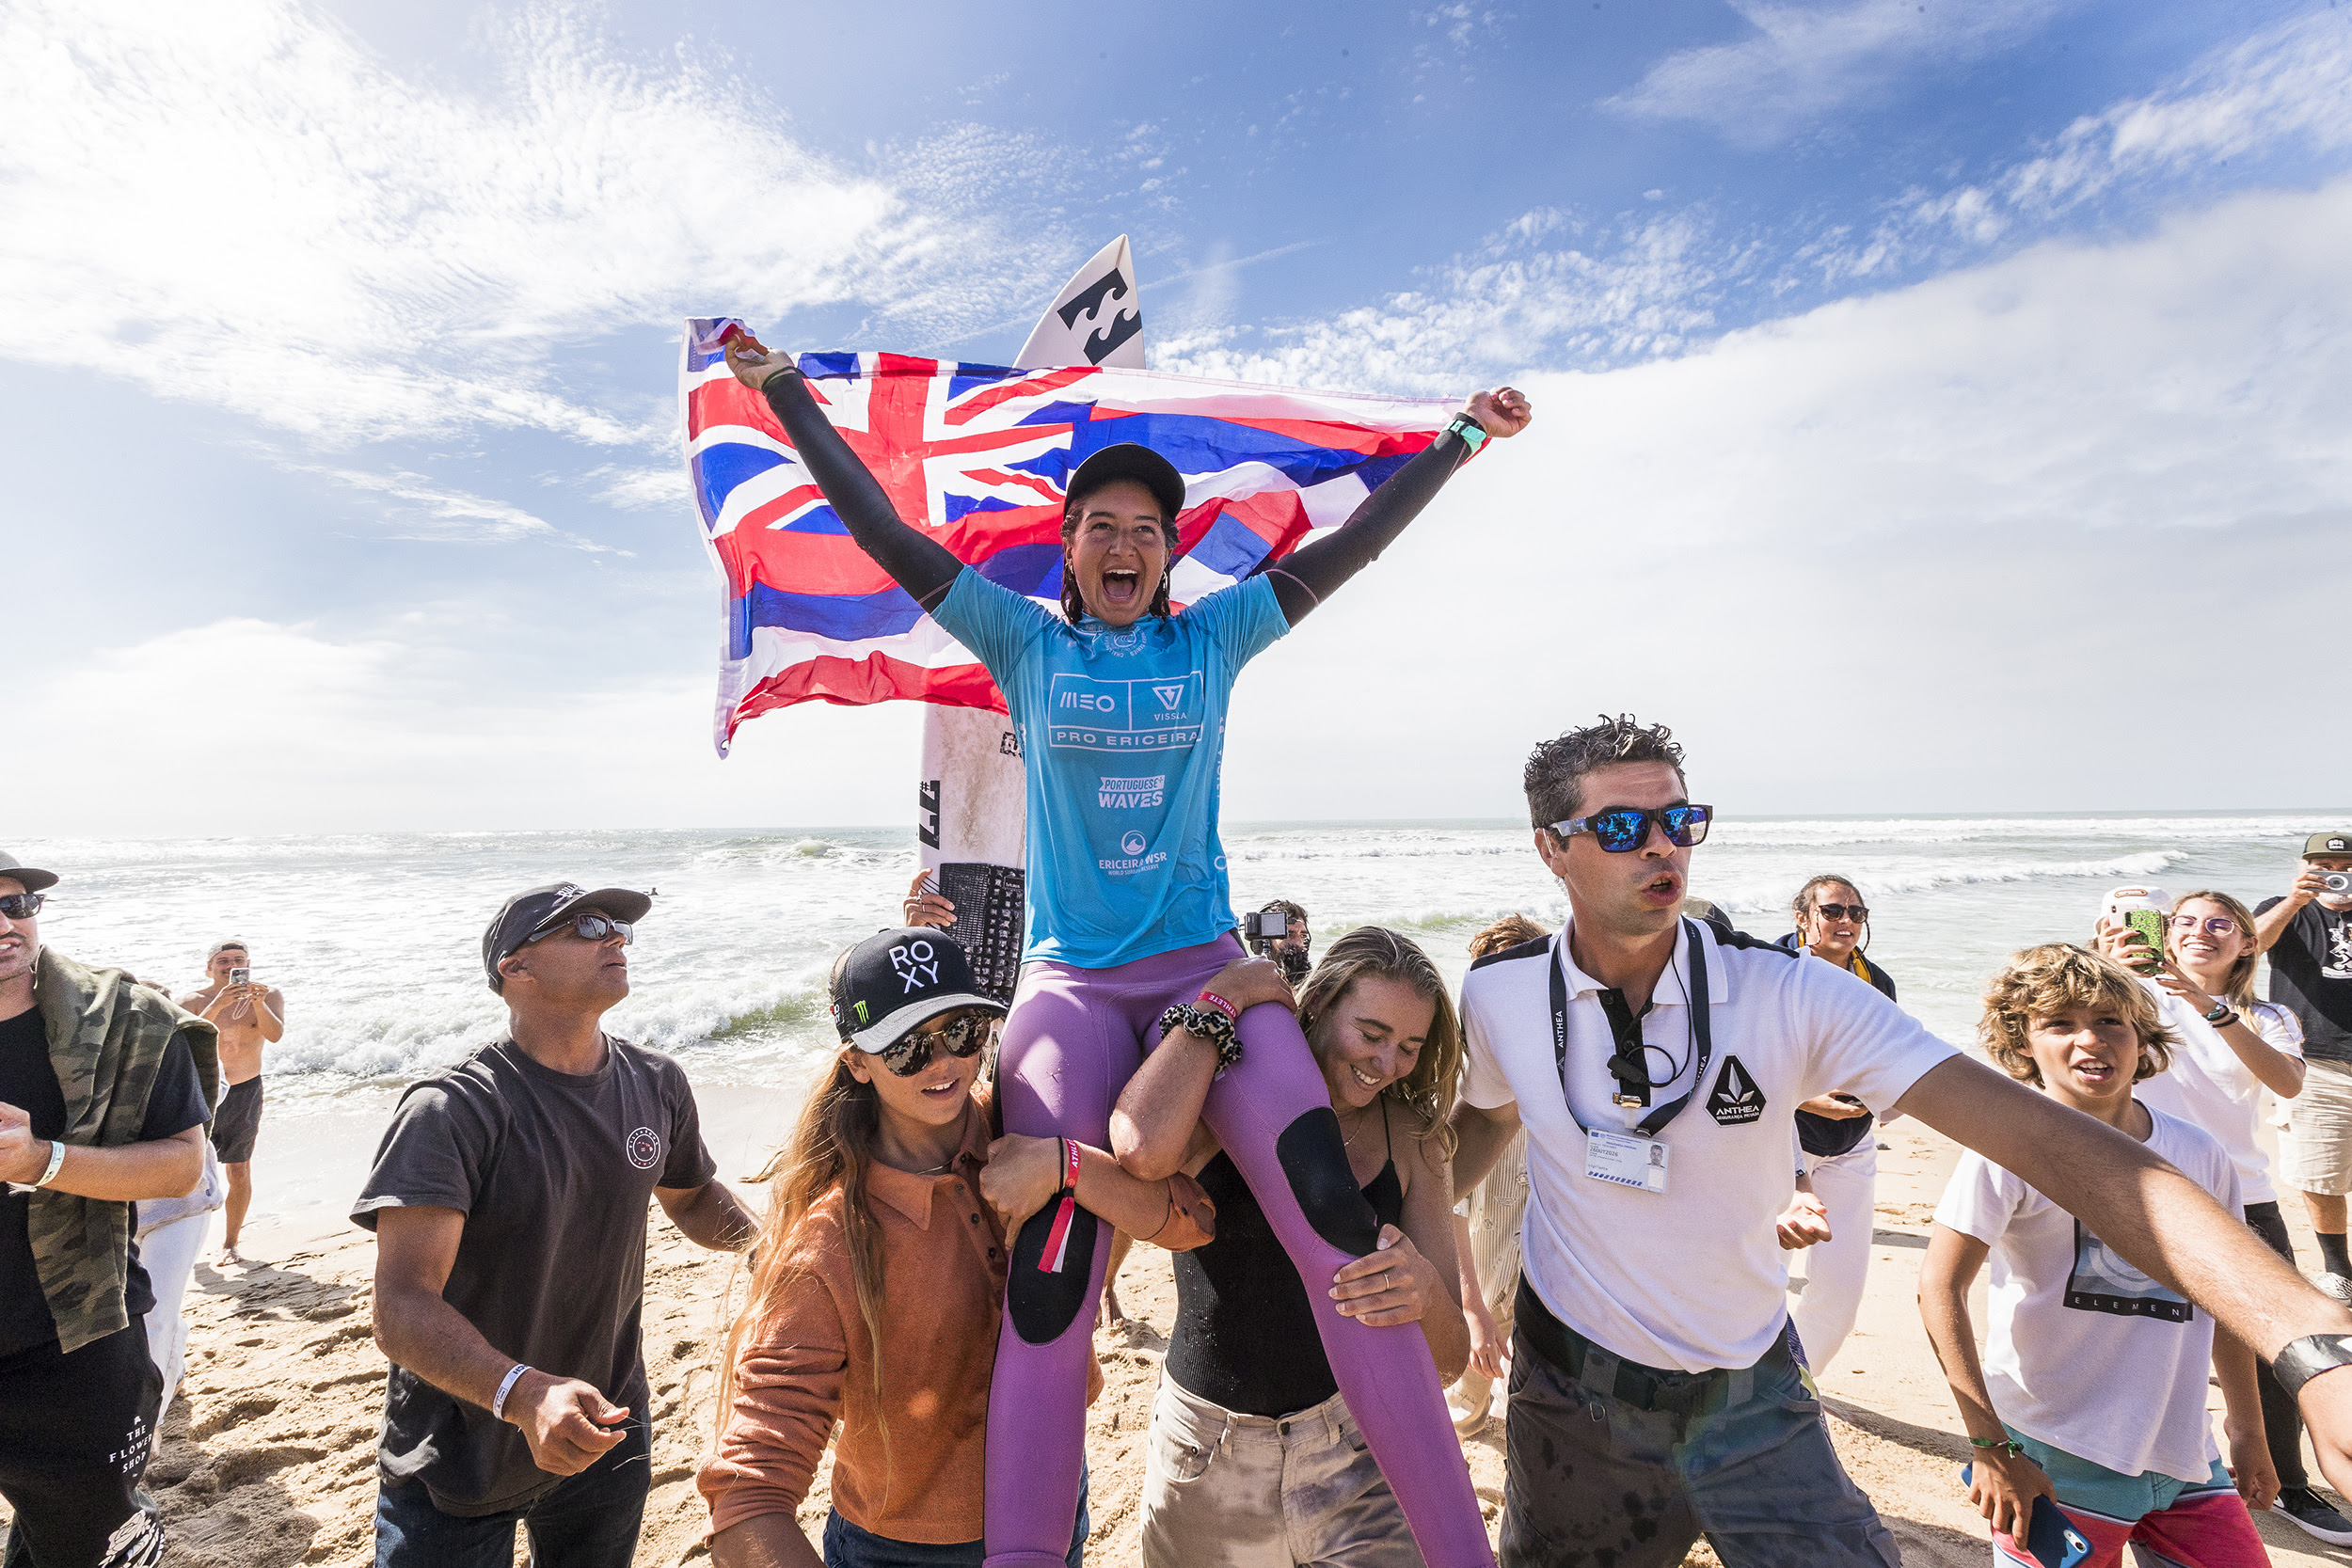 Clean Sweep for Hawaiʻi, Lau and Silva Win 2021 Surf Contest in Portugal